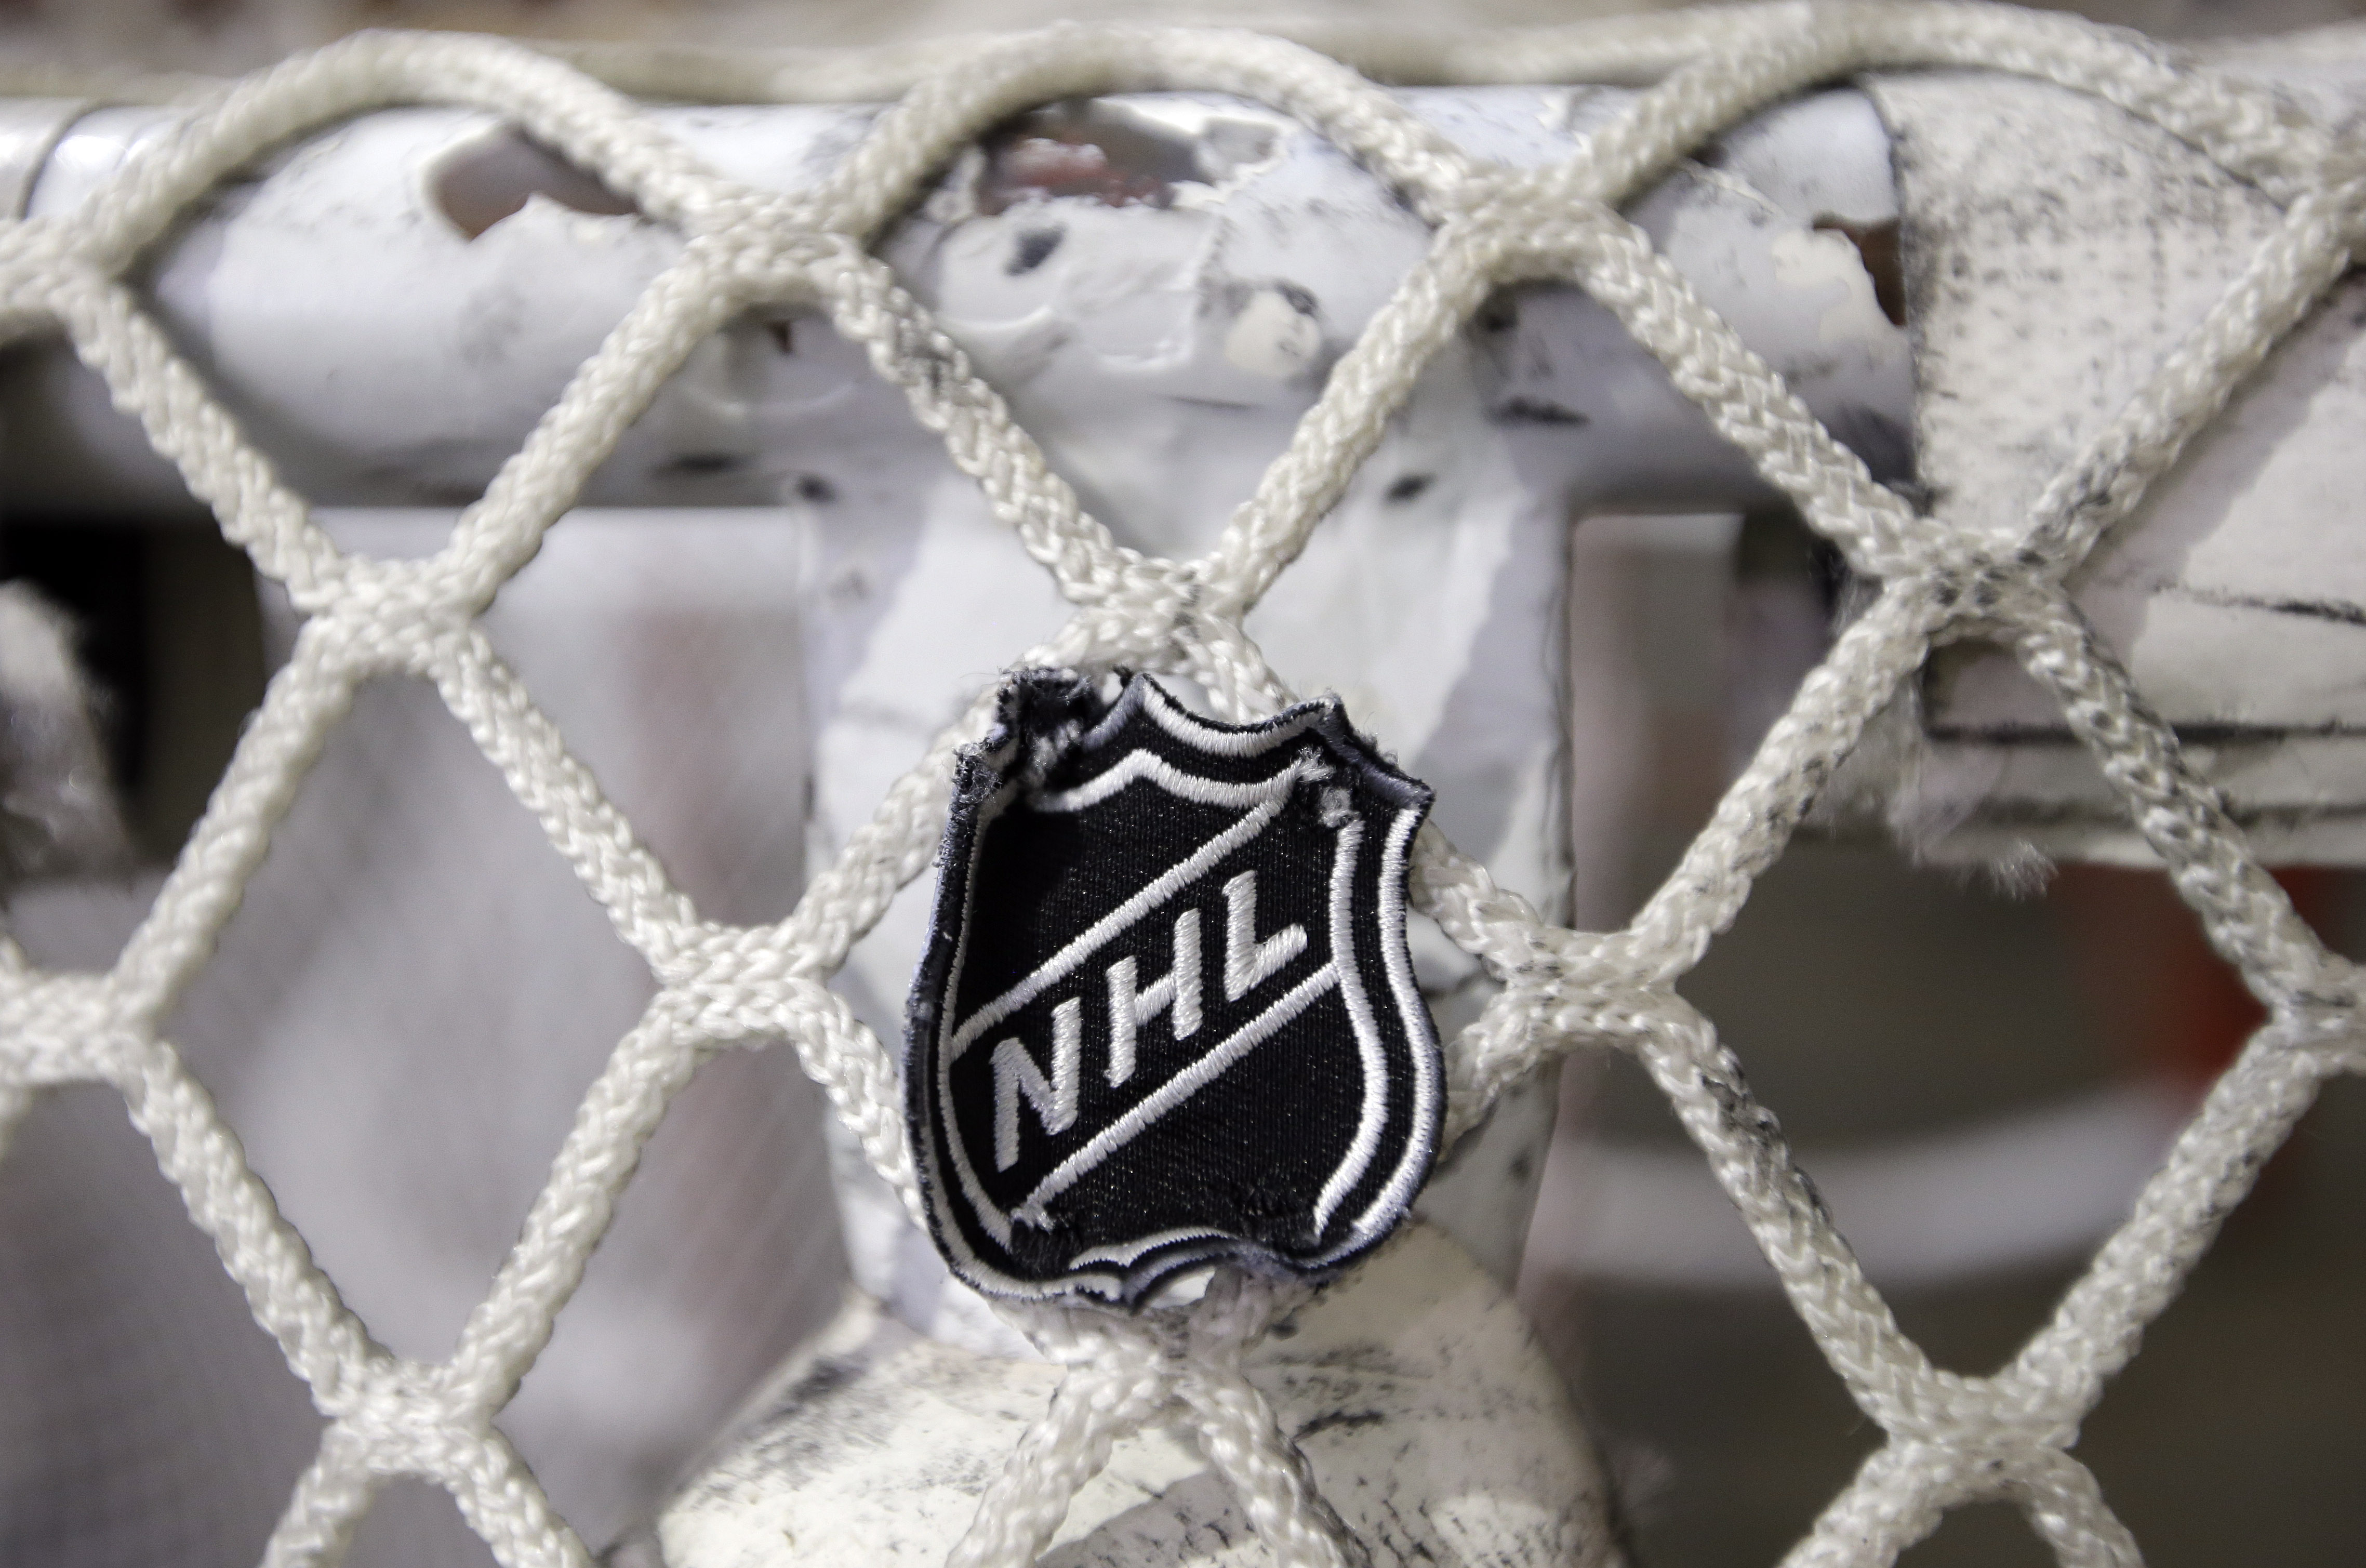 The NHL plans to punish unvaccinated players more harshly if they test positive for the coronavirus as part of new protocols for the upcoming season.